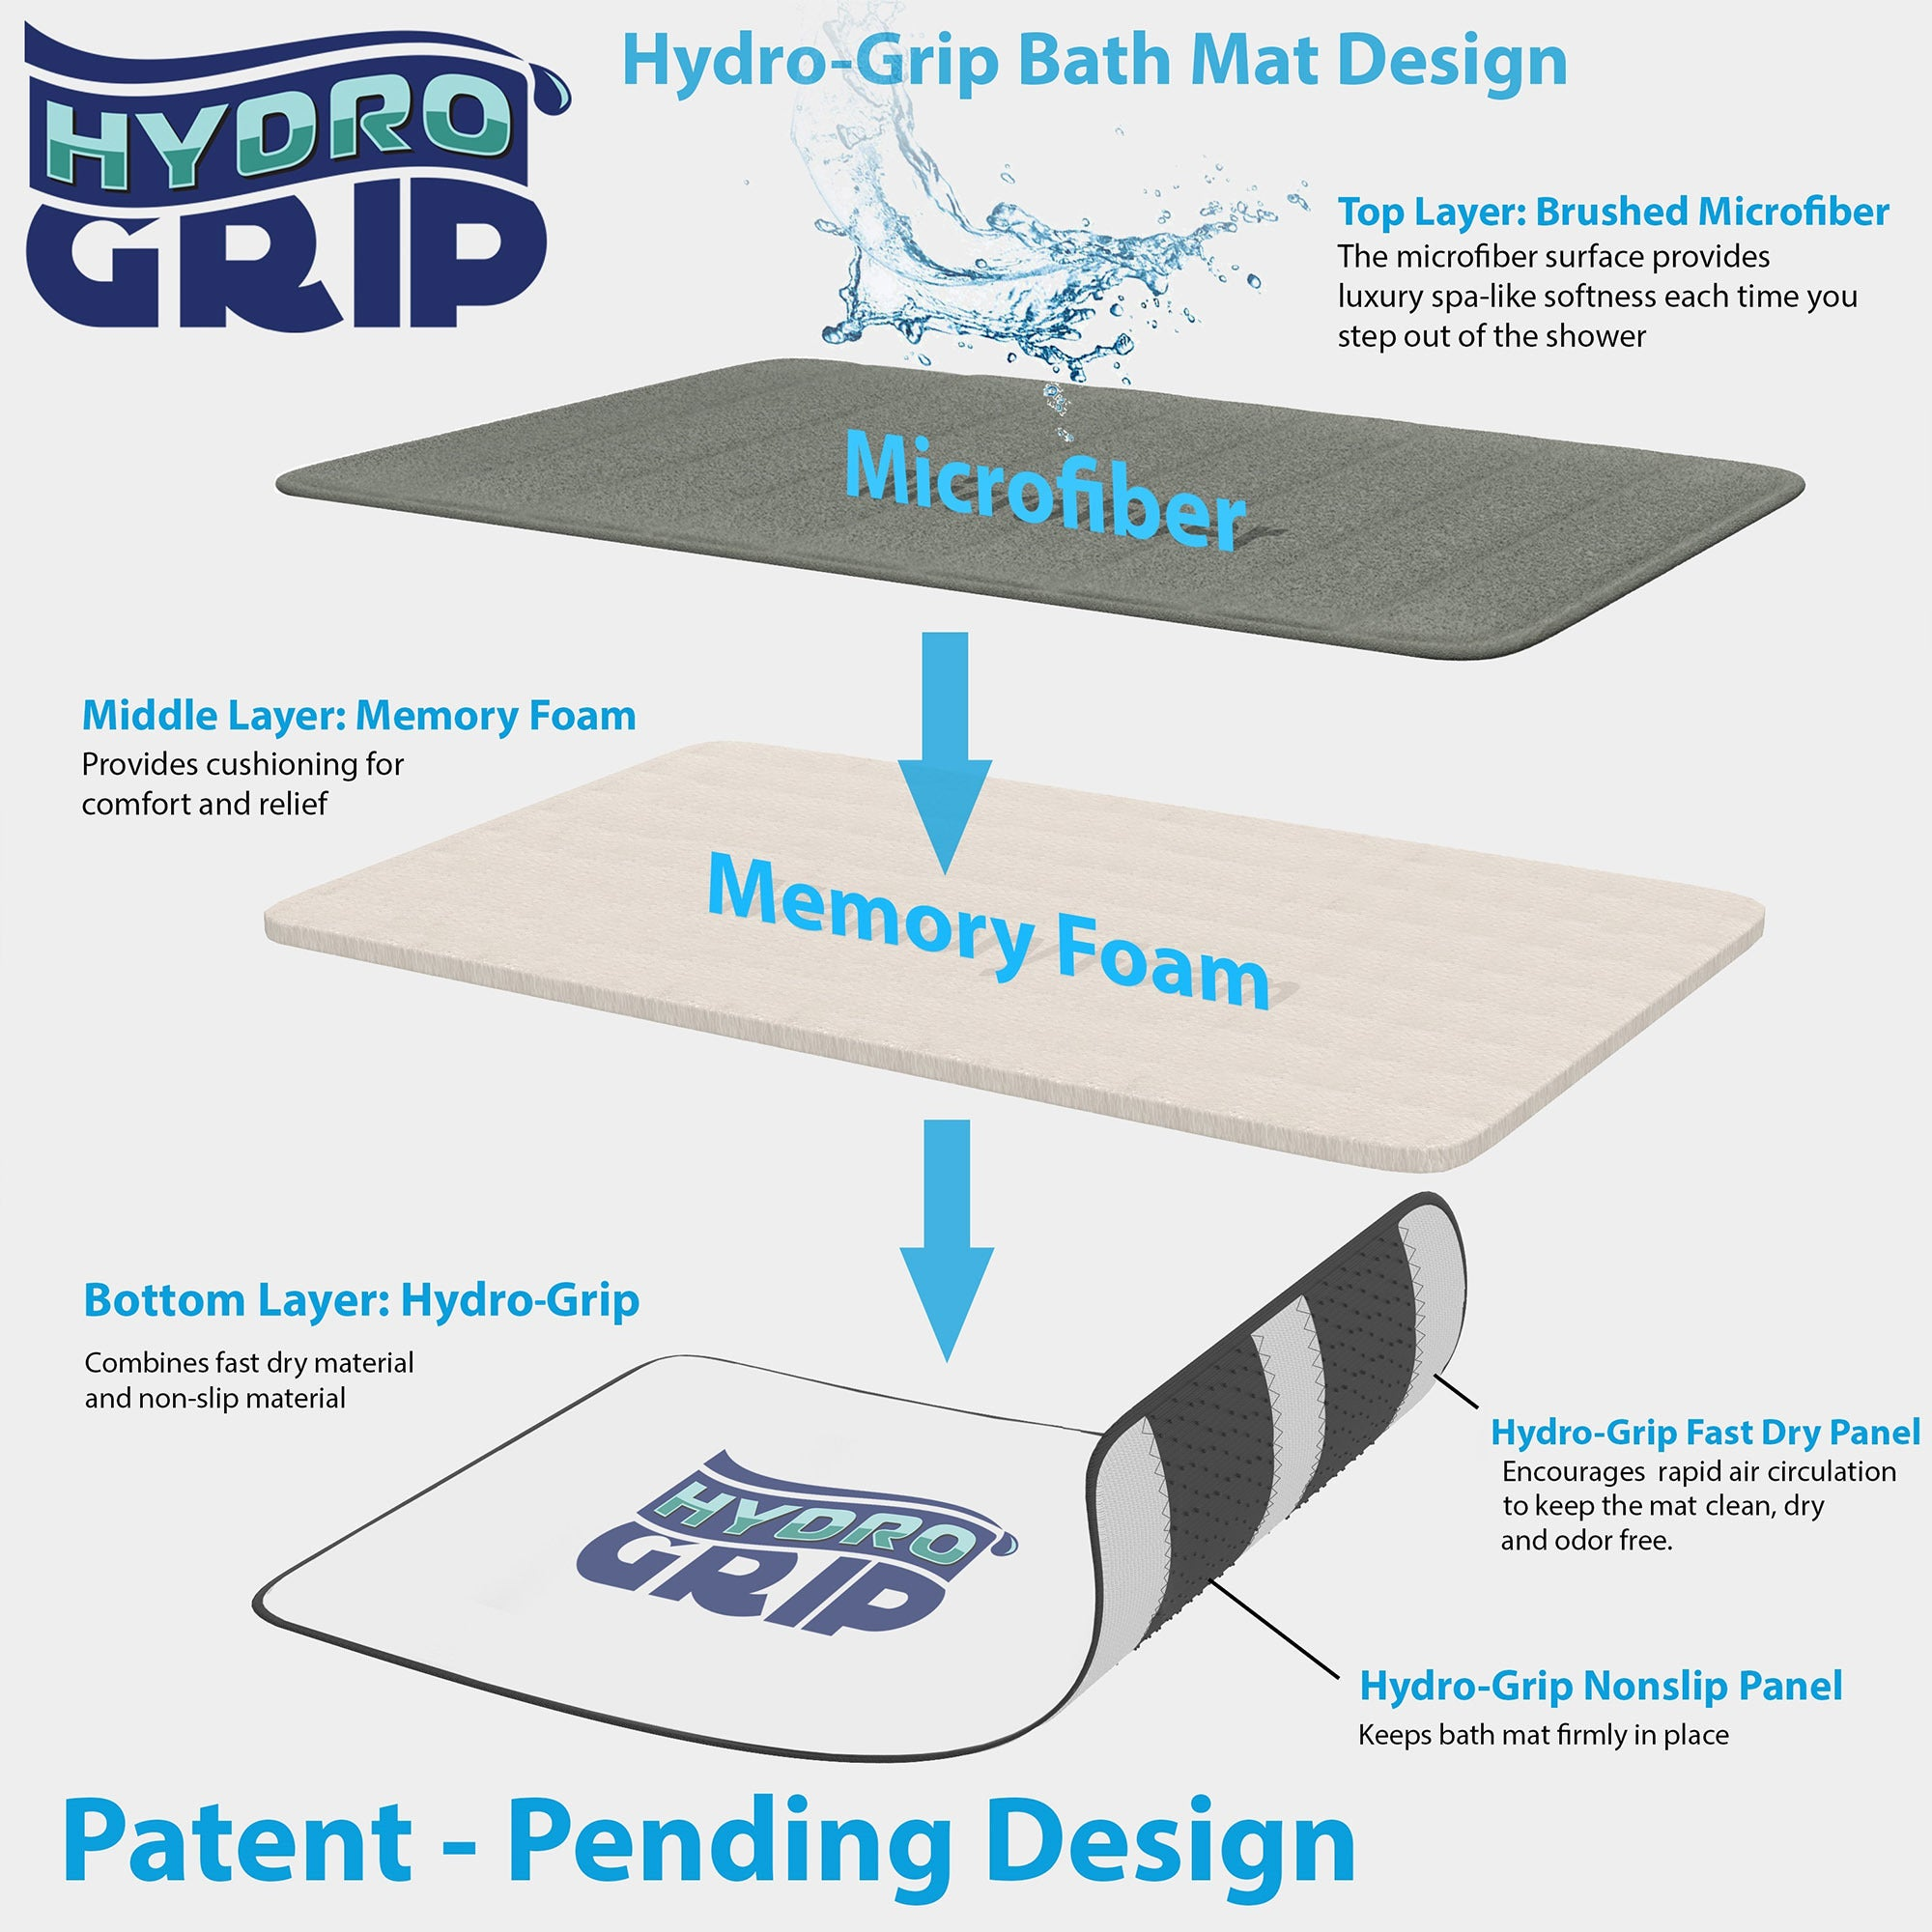 Non Slip And Fast Dry 2 Piece Memory Foam Bath Mats Absorbent Hydro Grip Designed Rug By Windsor Home 31 X 24 5 On Free Shipping